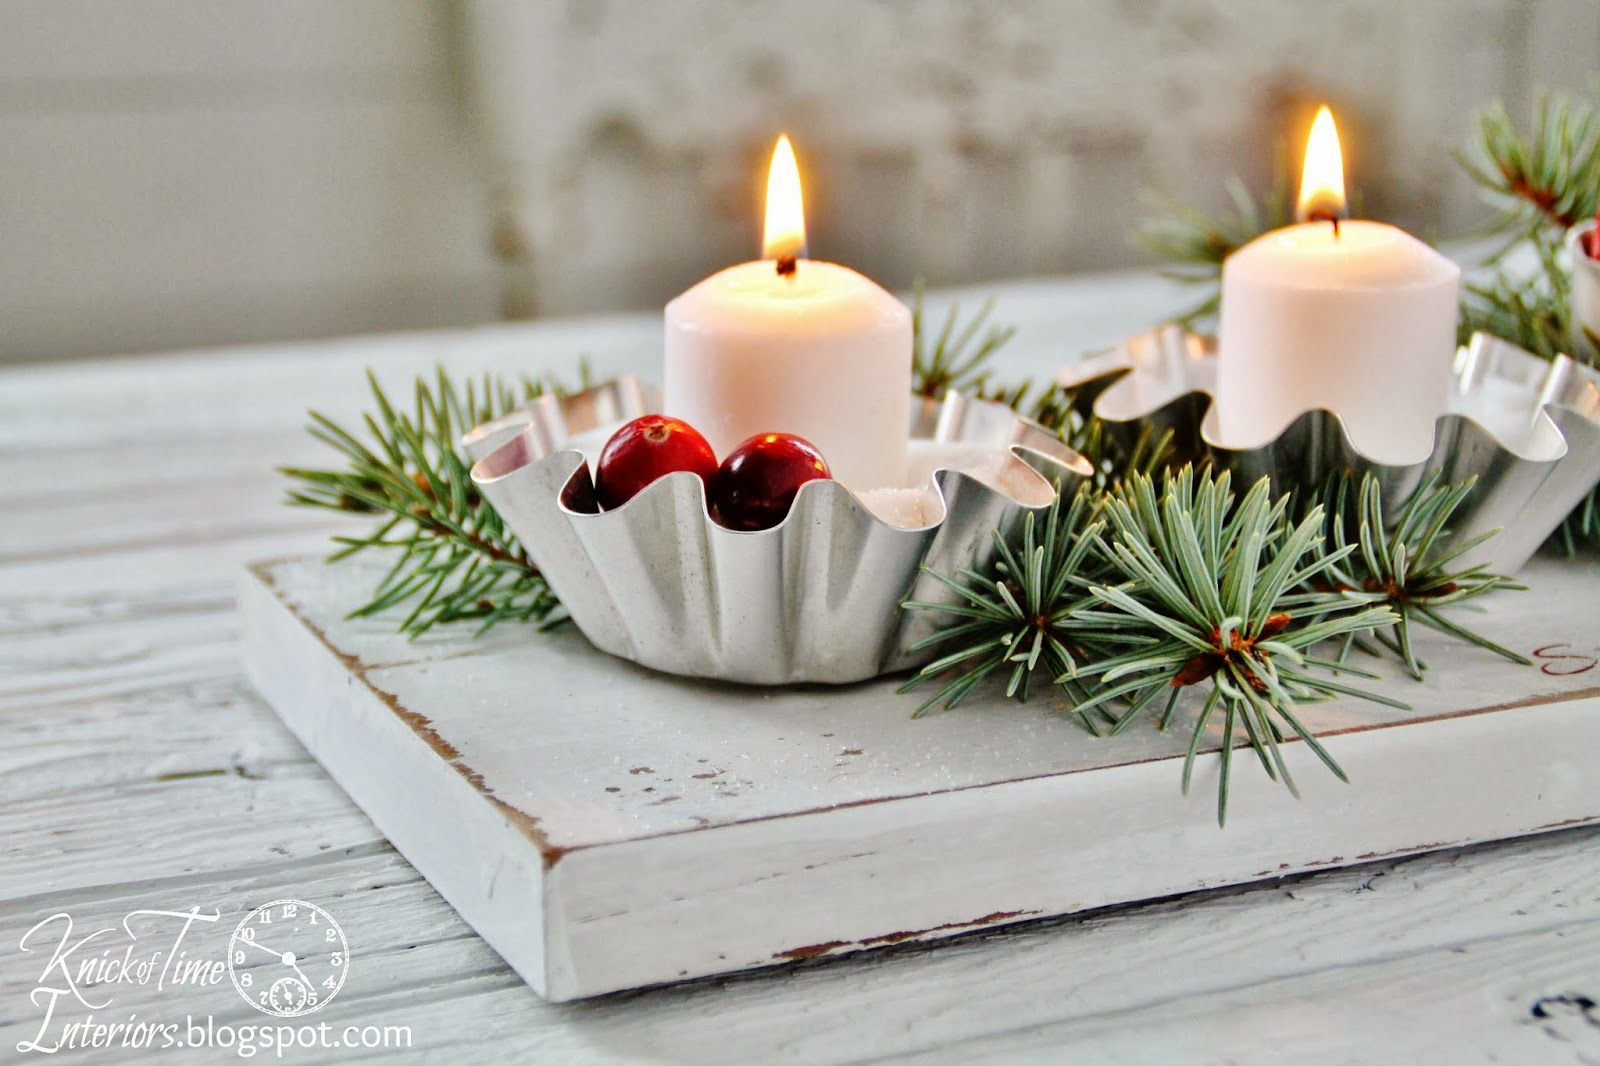 ... so I decided to incorporate them into a Christmas candle centerpiece